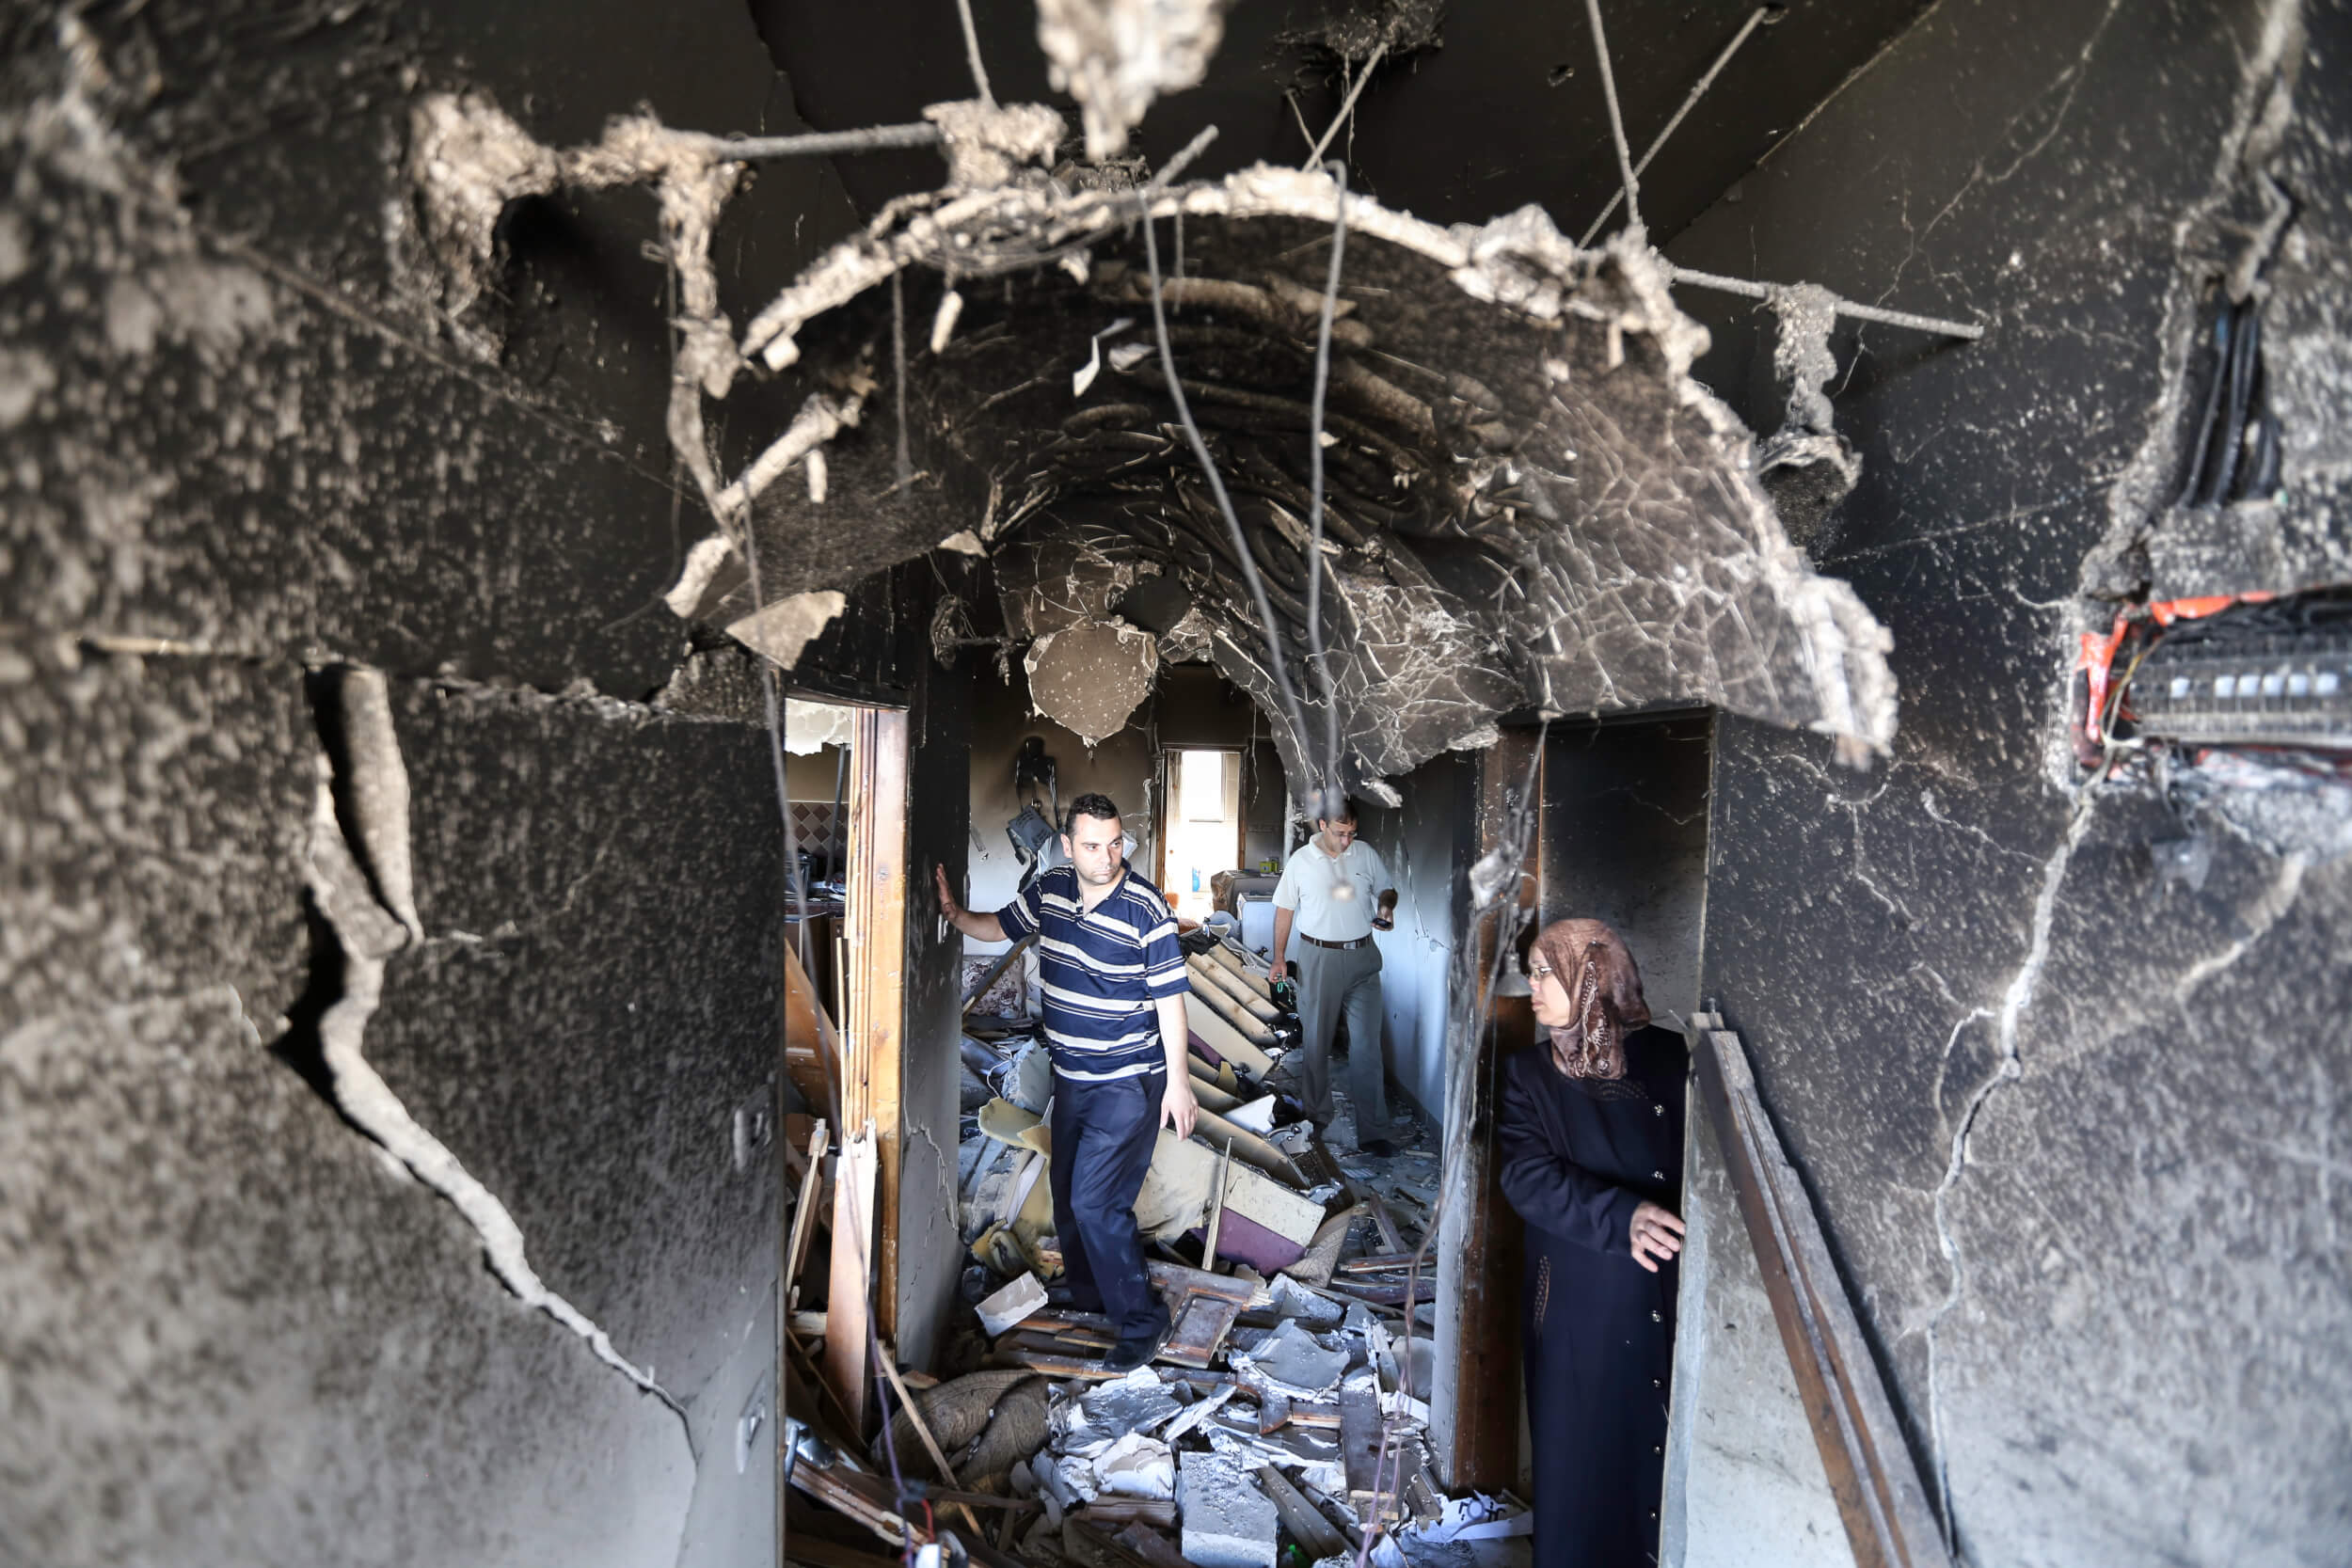 In photos: Israeli soliders destroy kidnapping suspects' family